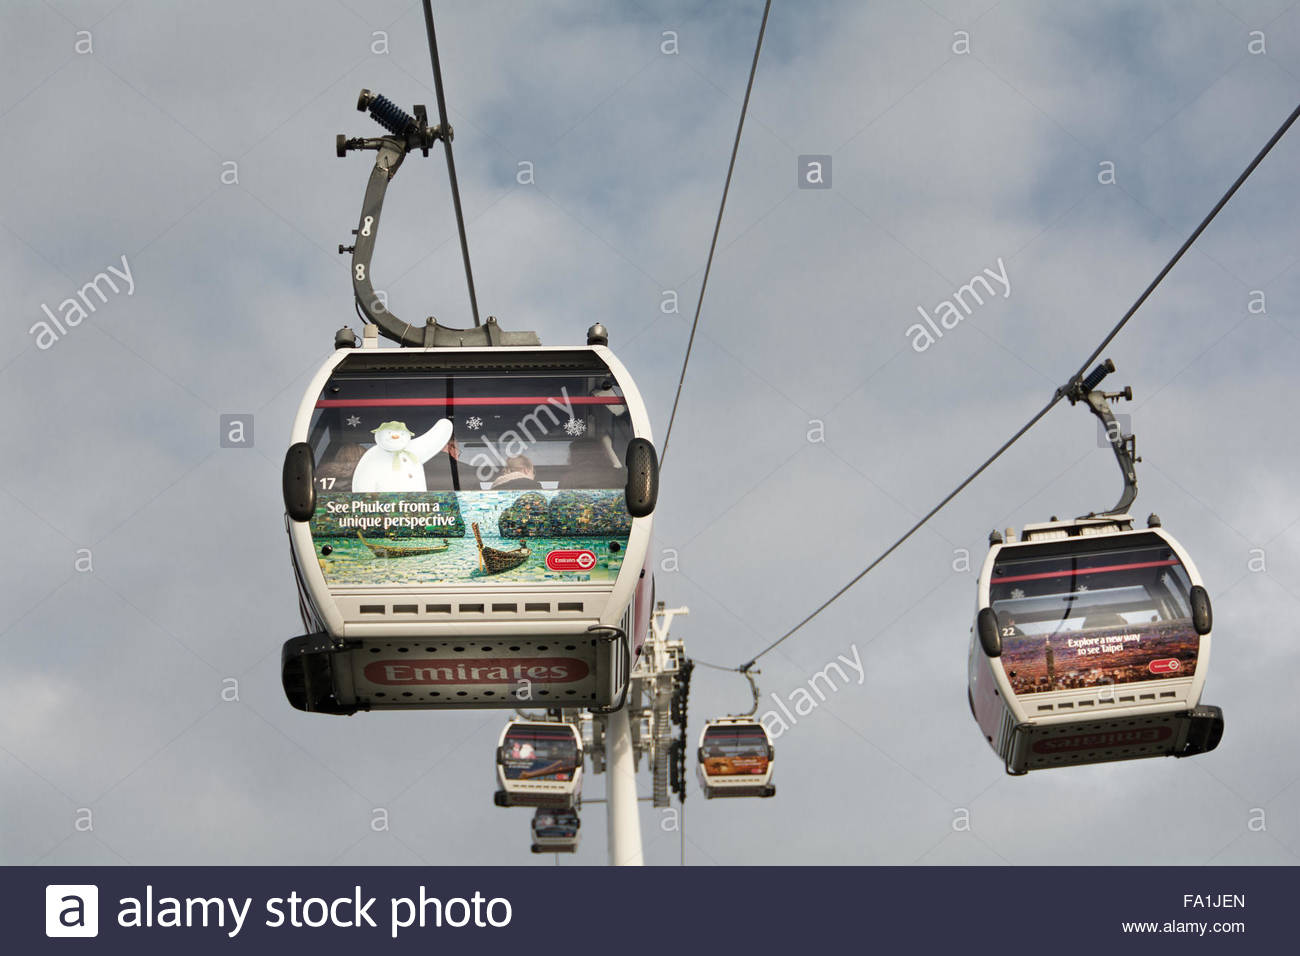 How to Buy a Cable Car Ticket in San Francisco How to Buy a Cable Car Ticket in San Francisco new picture